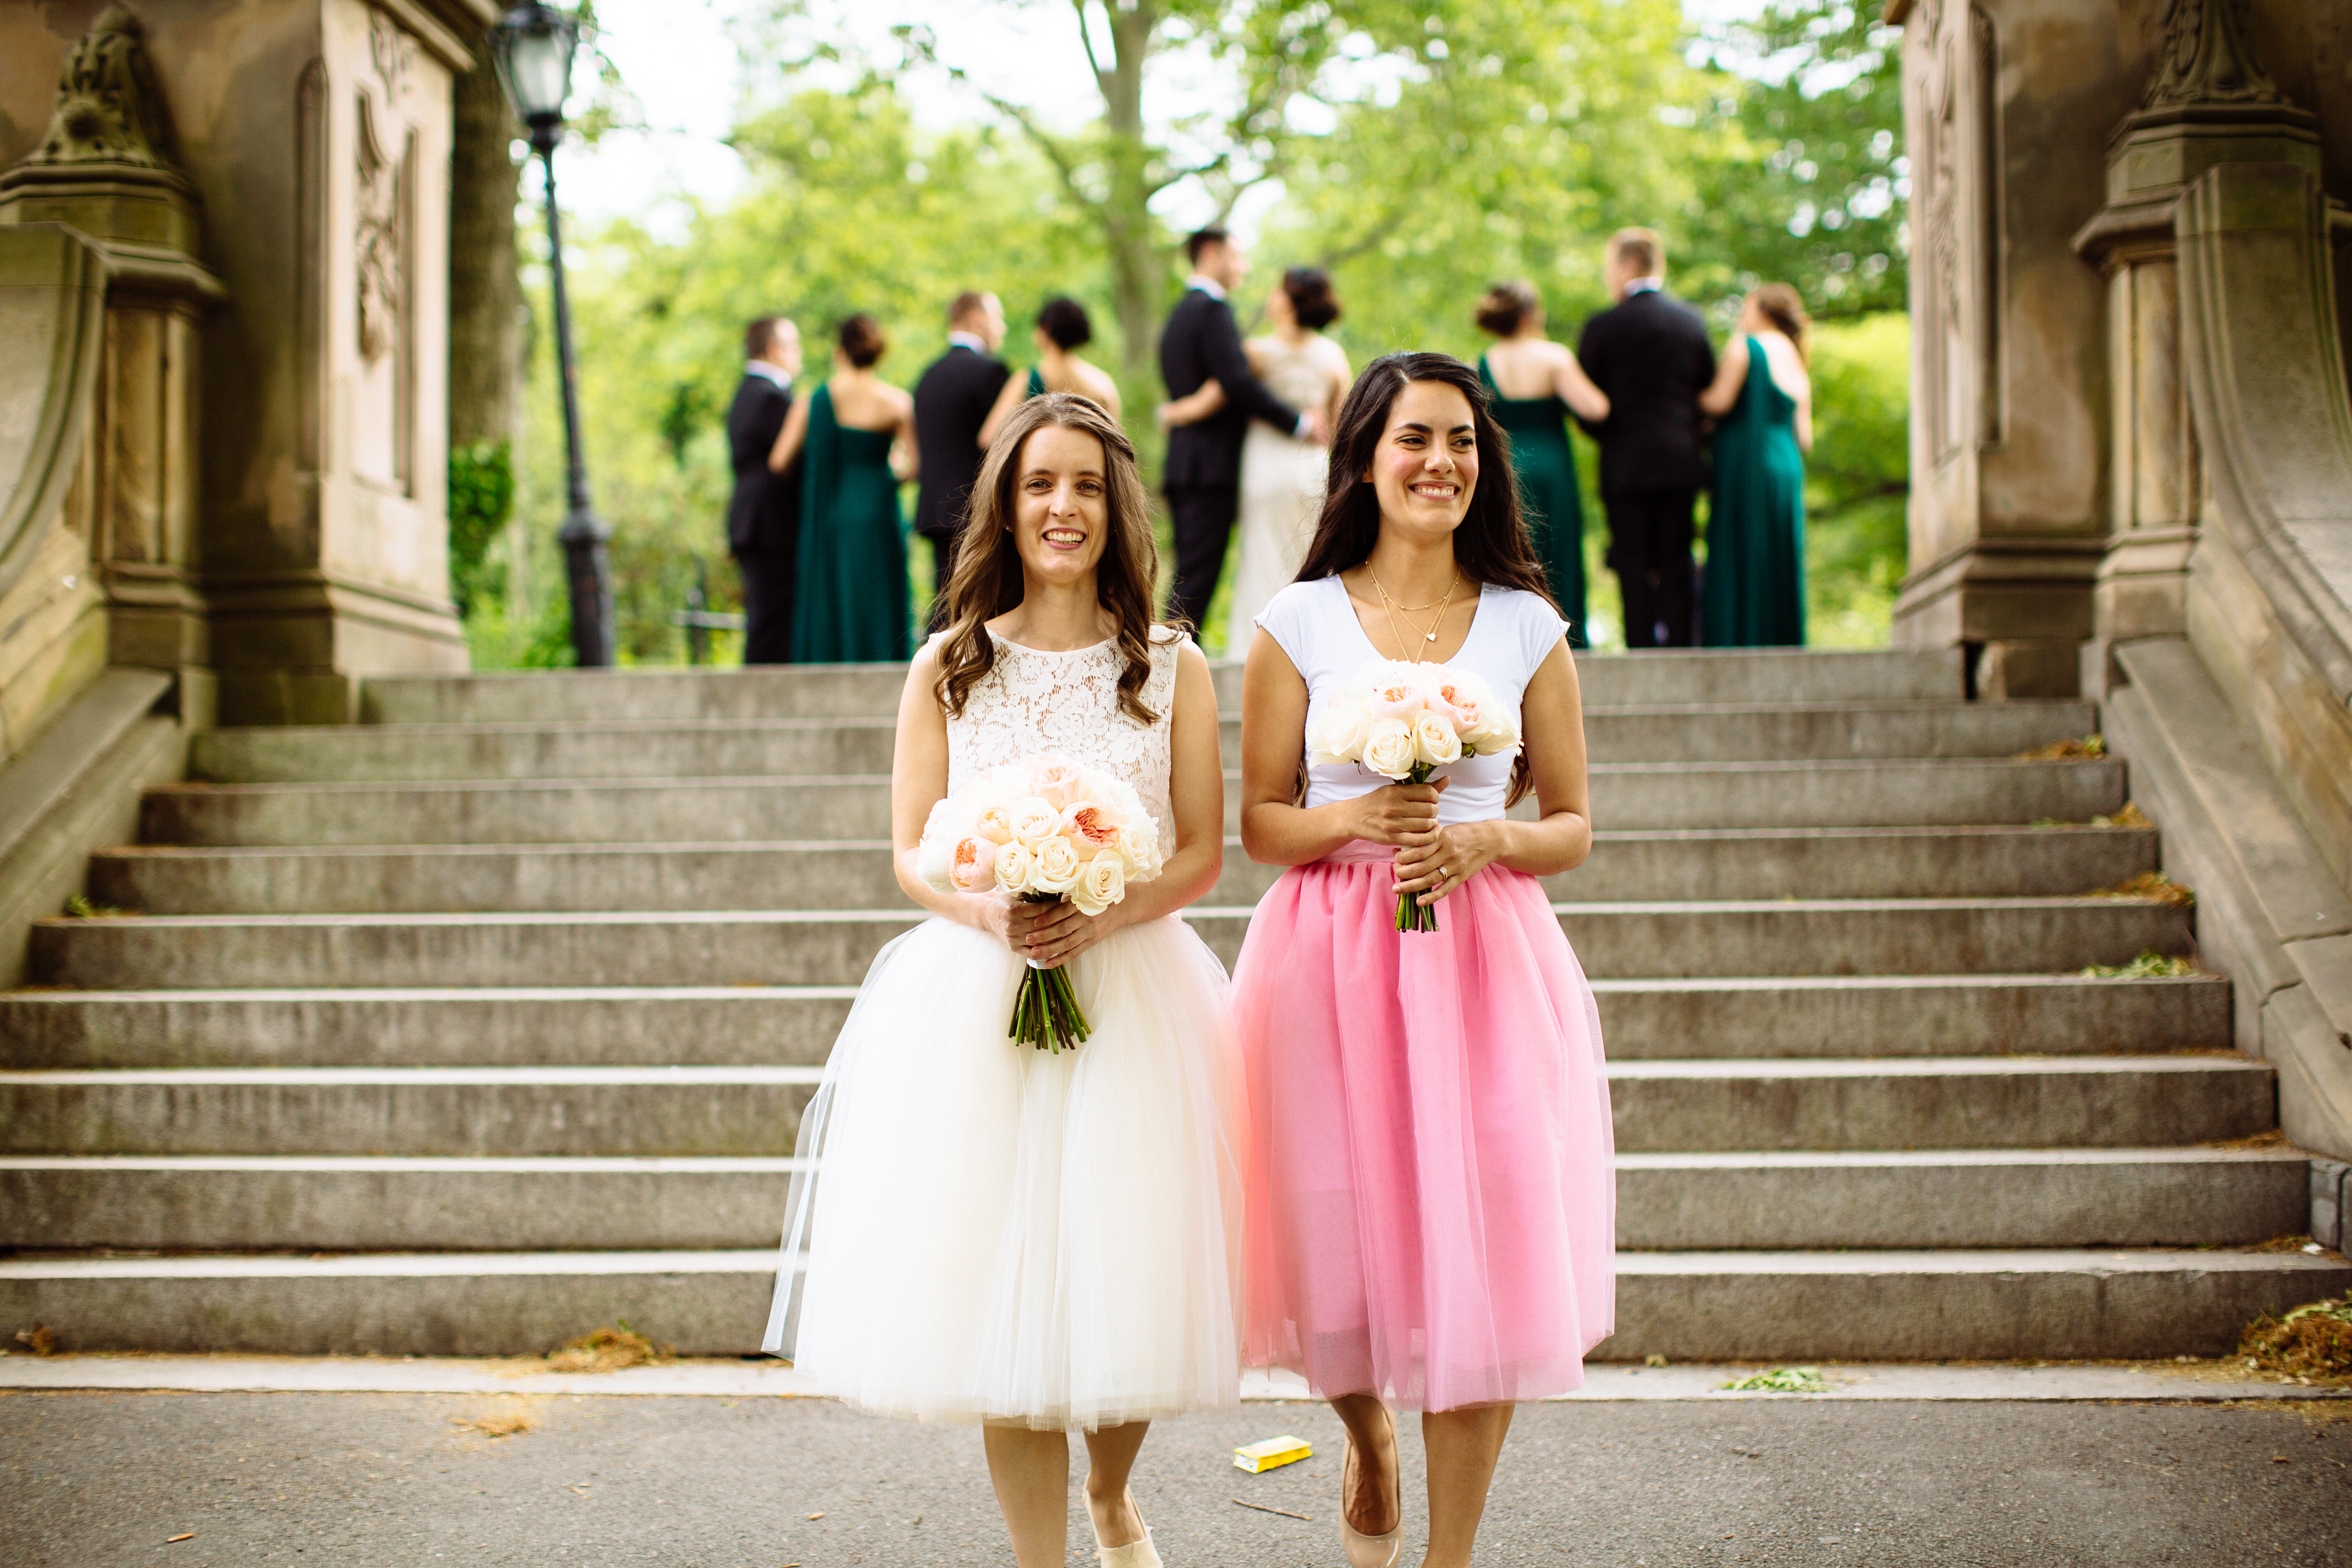 Bridal party at Central Park pop up wedding in New York